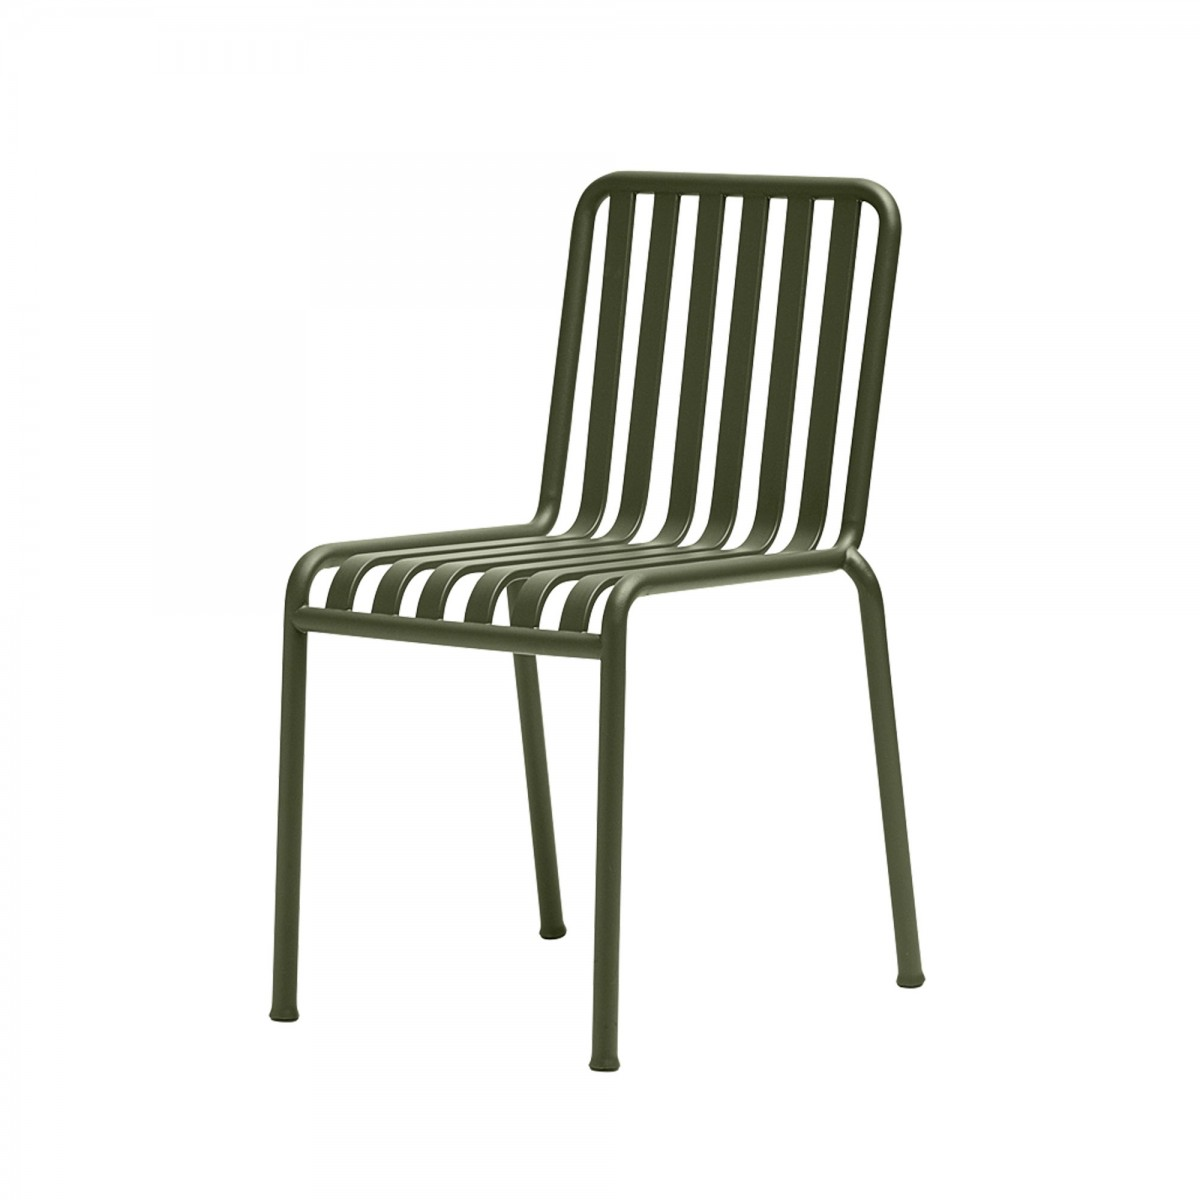 palissade chair olive ronan and erwan bouroullec for hay. Black Bedroom Furniture Sets. Home Design Ideas